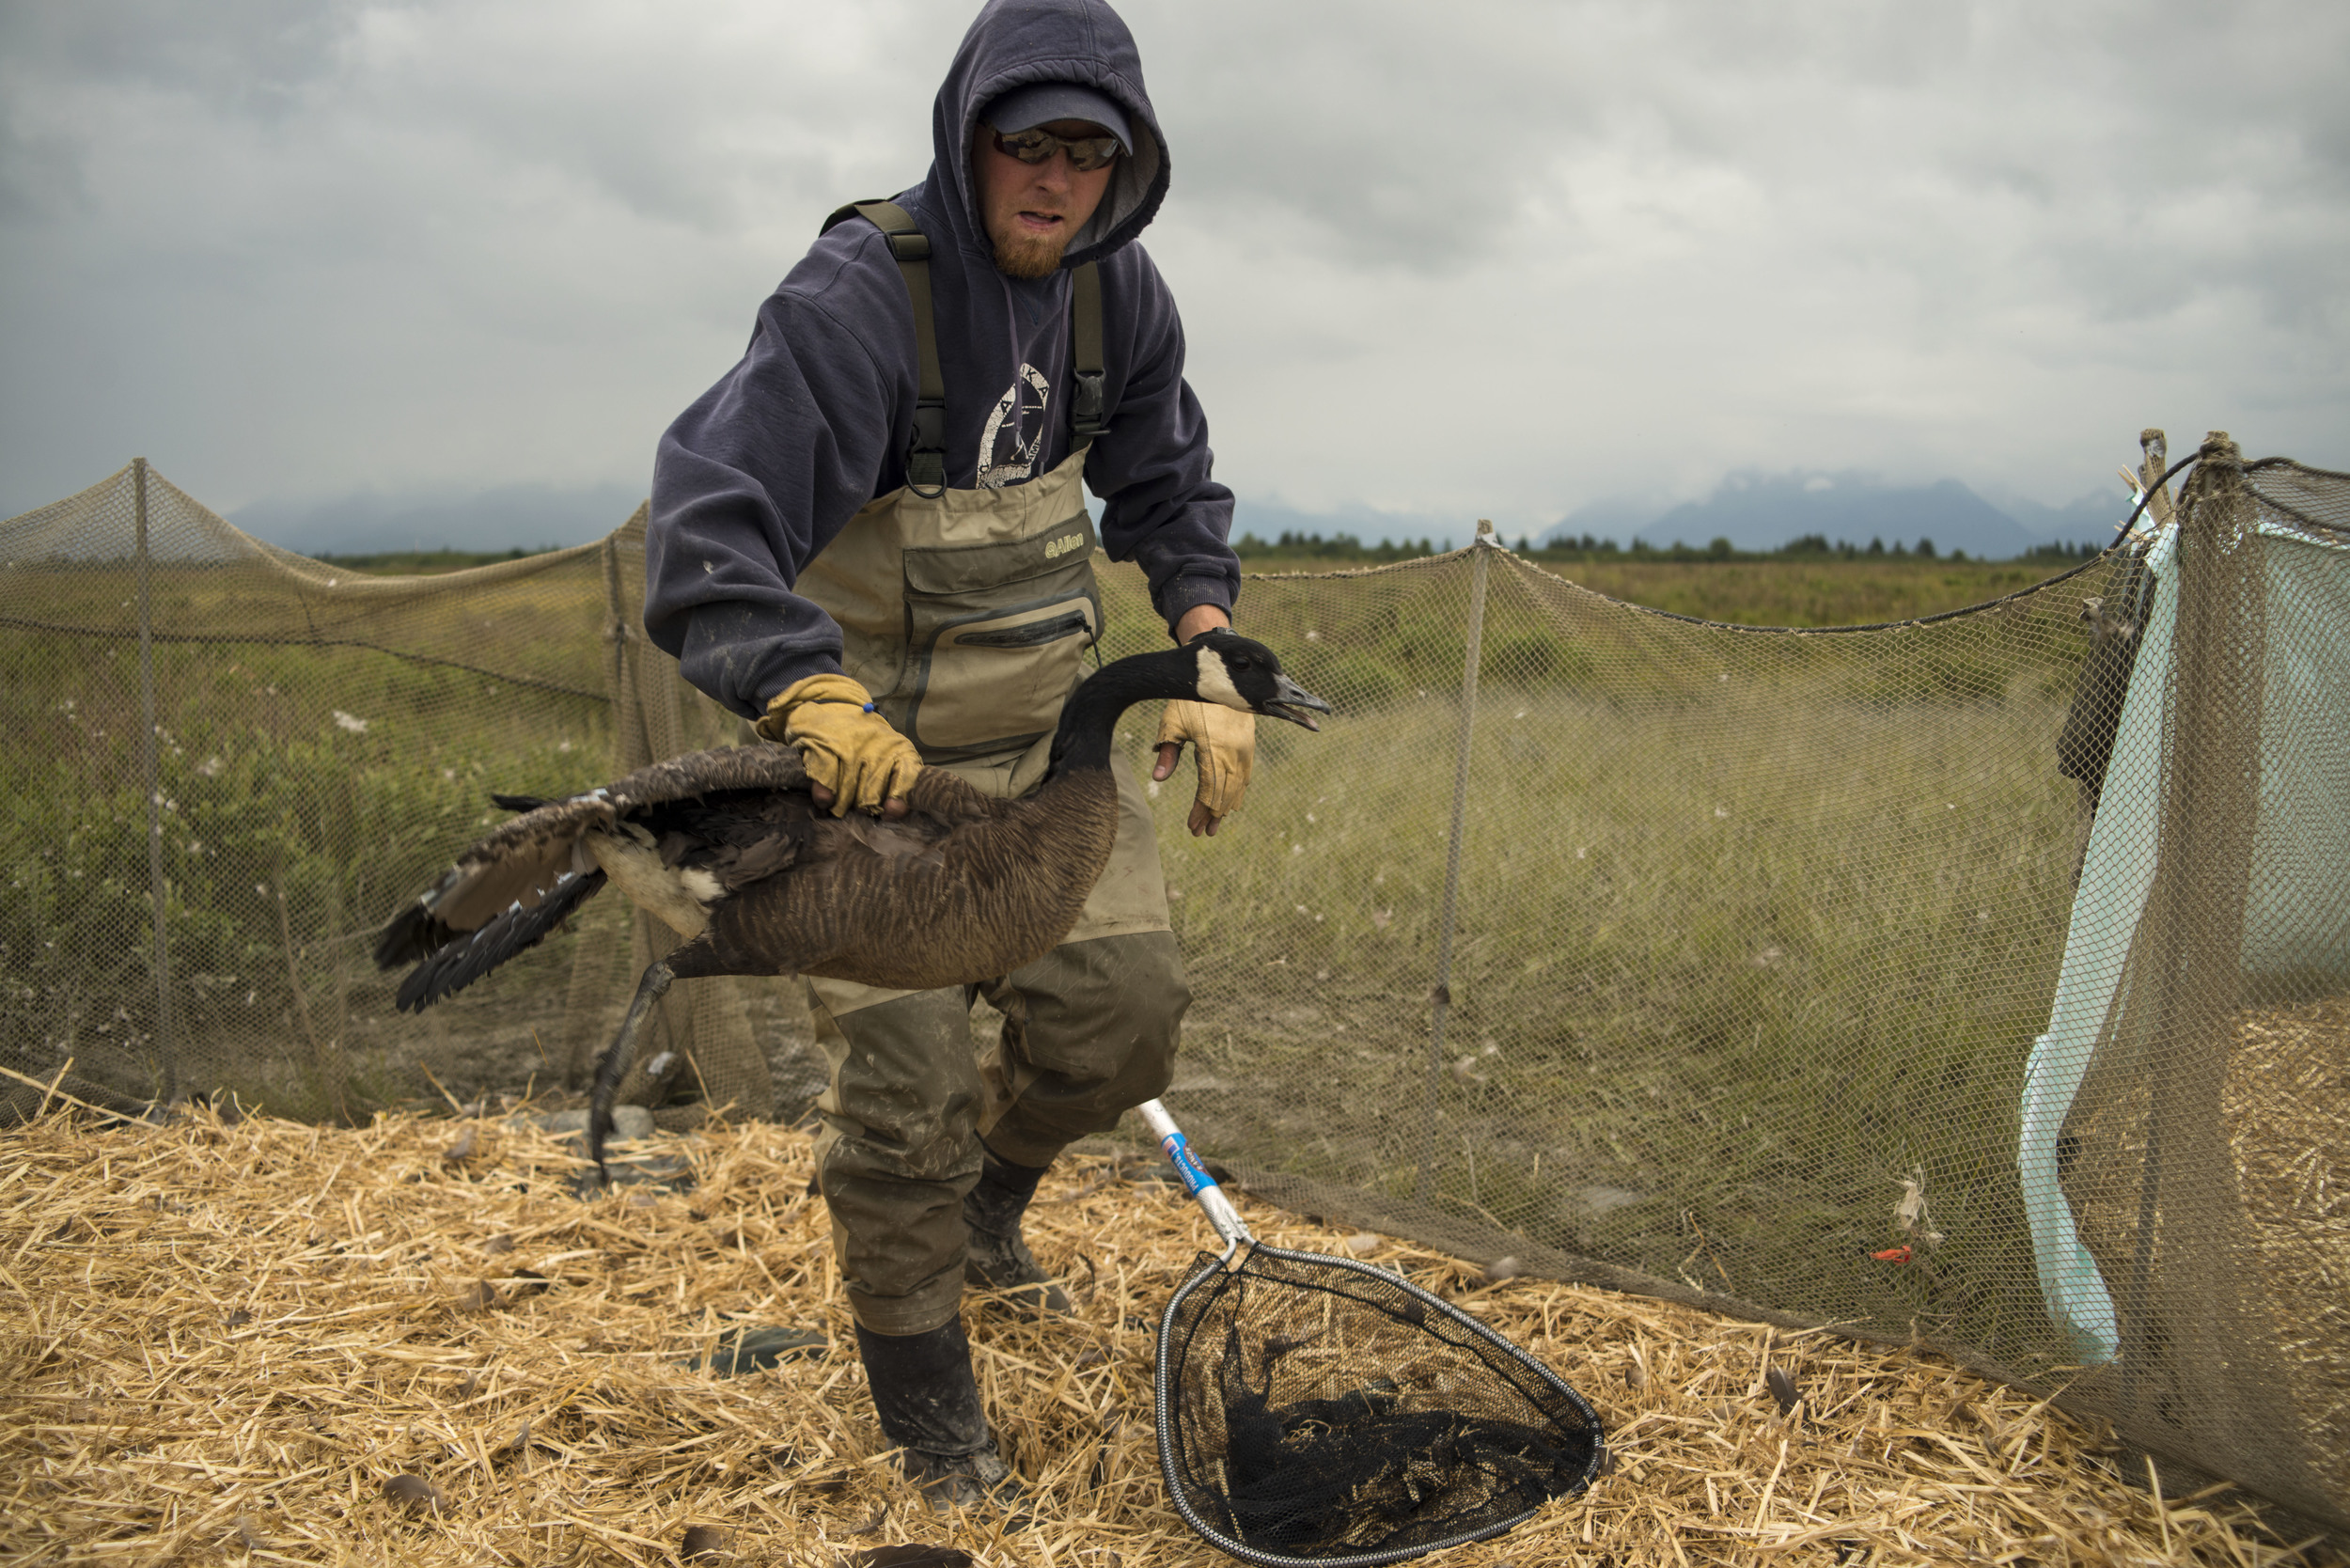 A volunteer uses a net to catch a goose from the holding pen for banding. The process continues for several hours each day.